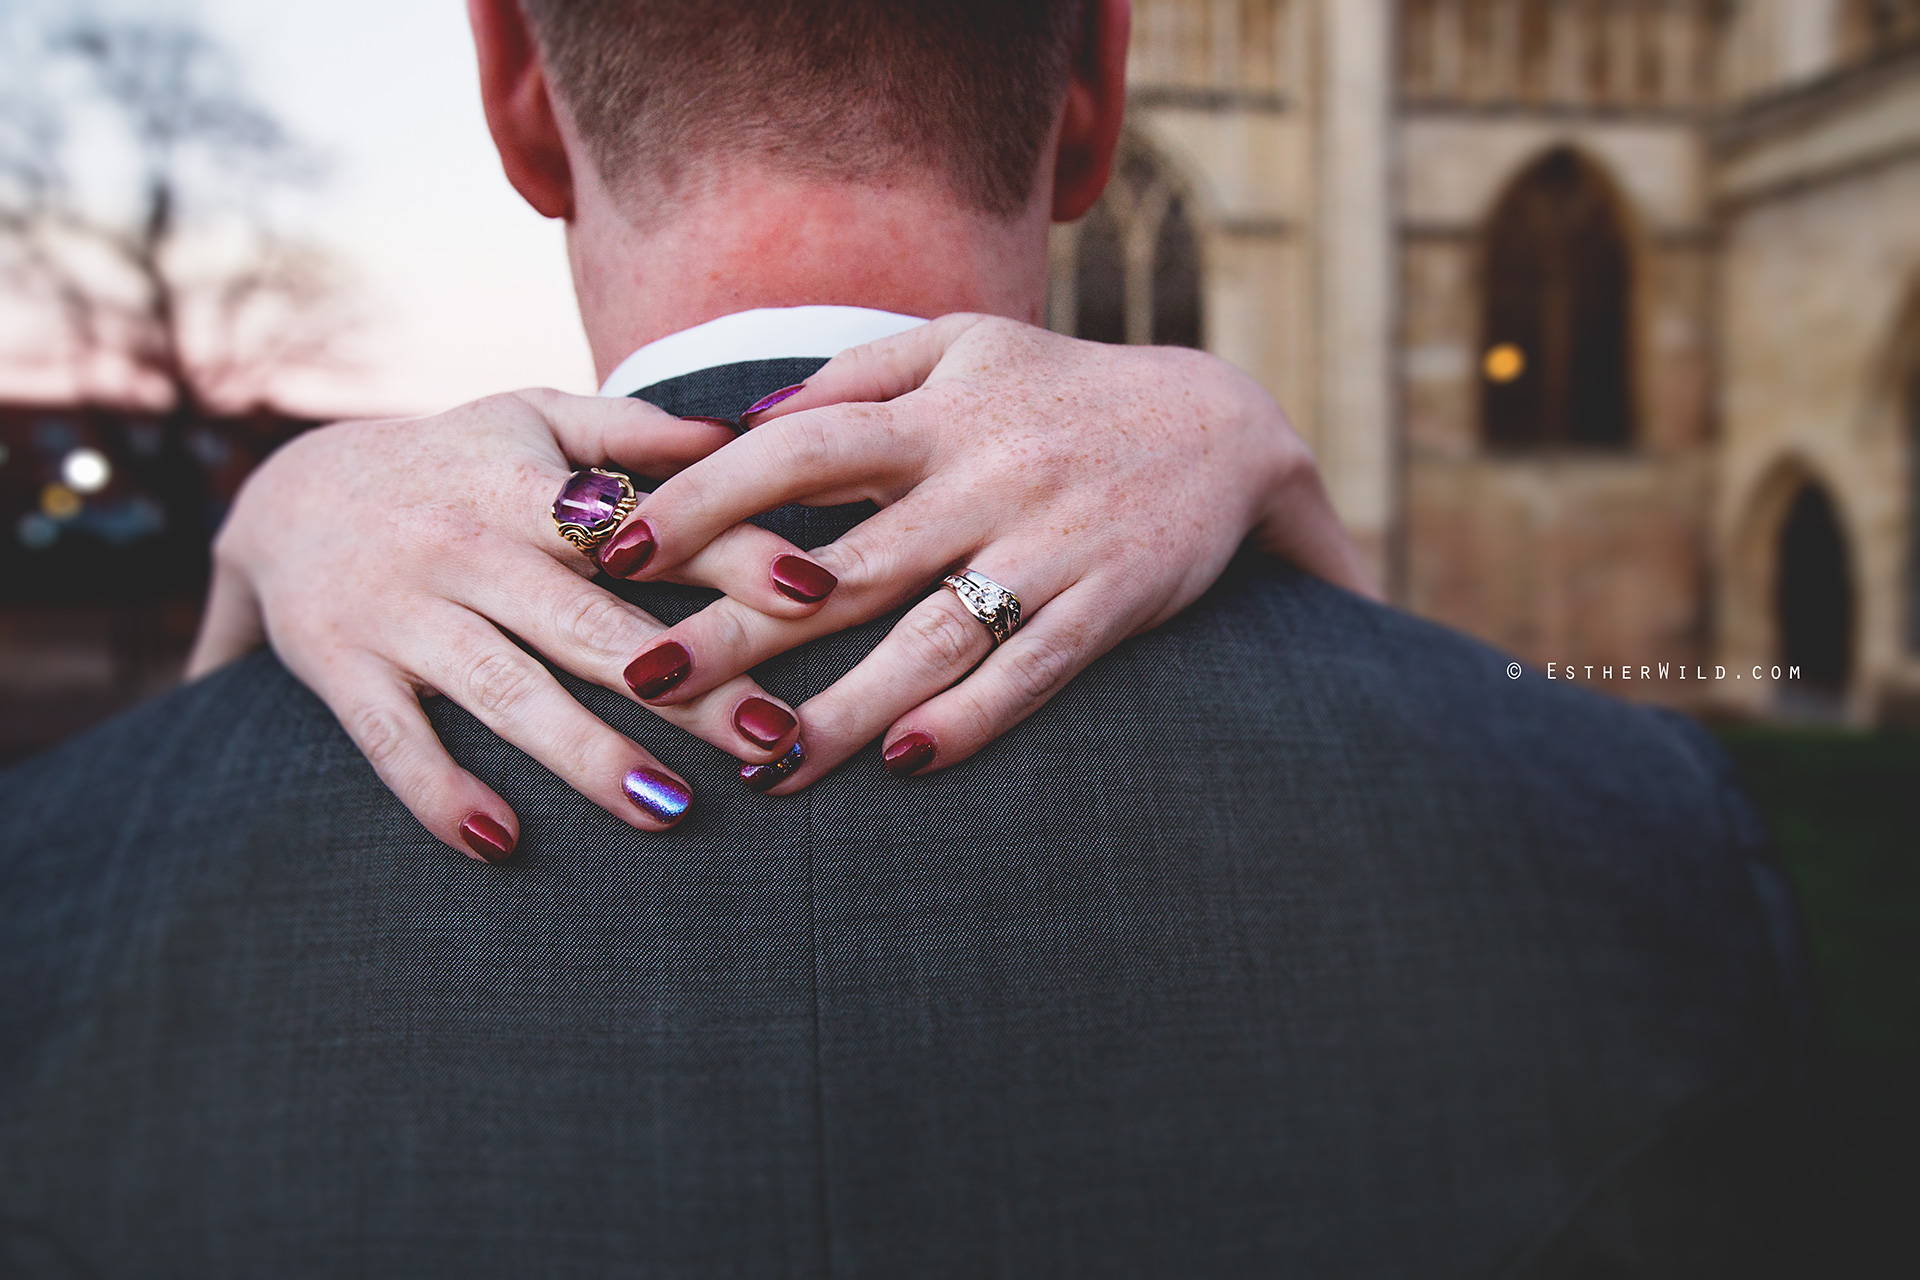 norwich_wedding_norfolk_norwich_castle_photography (10).jpg